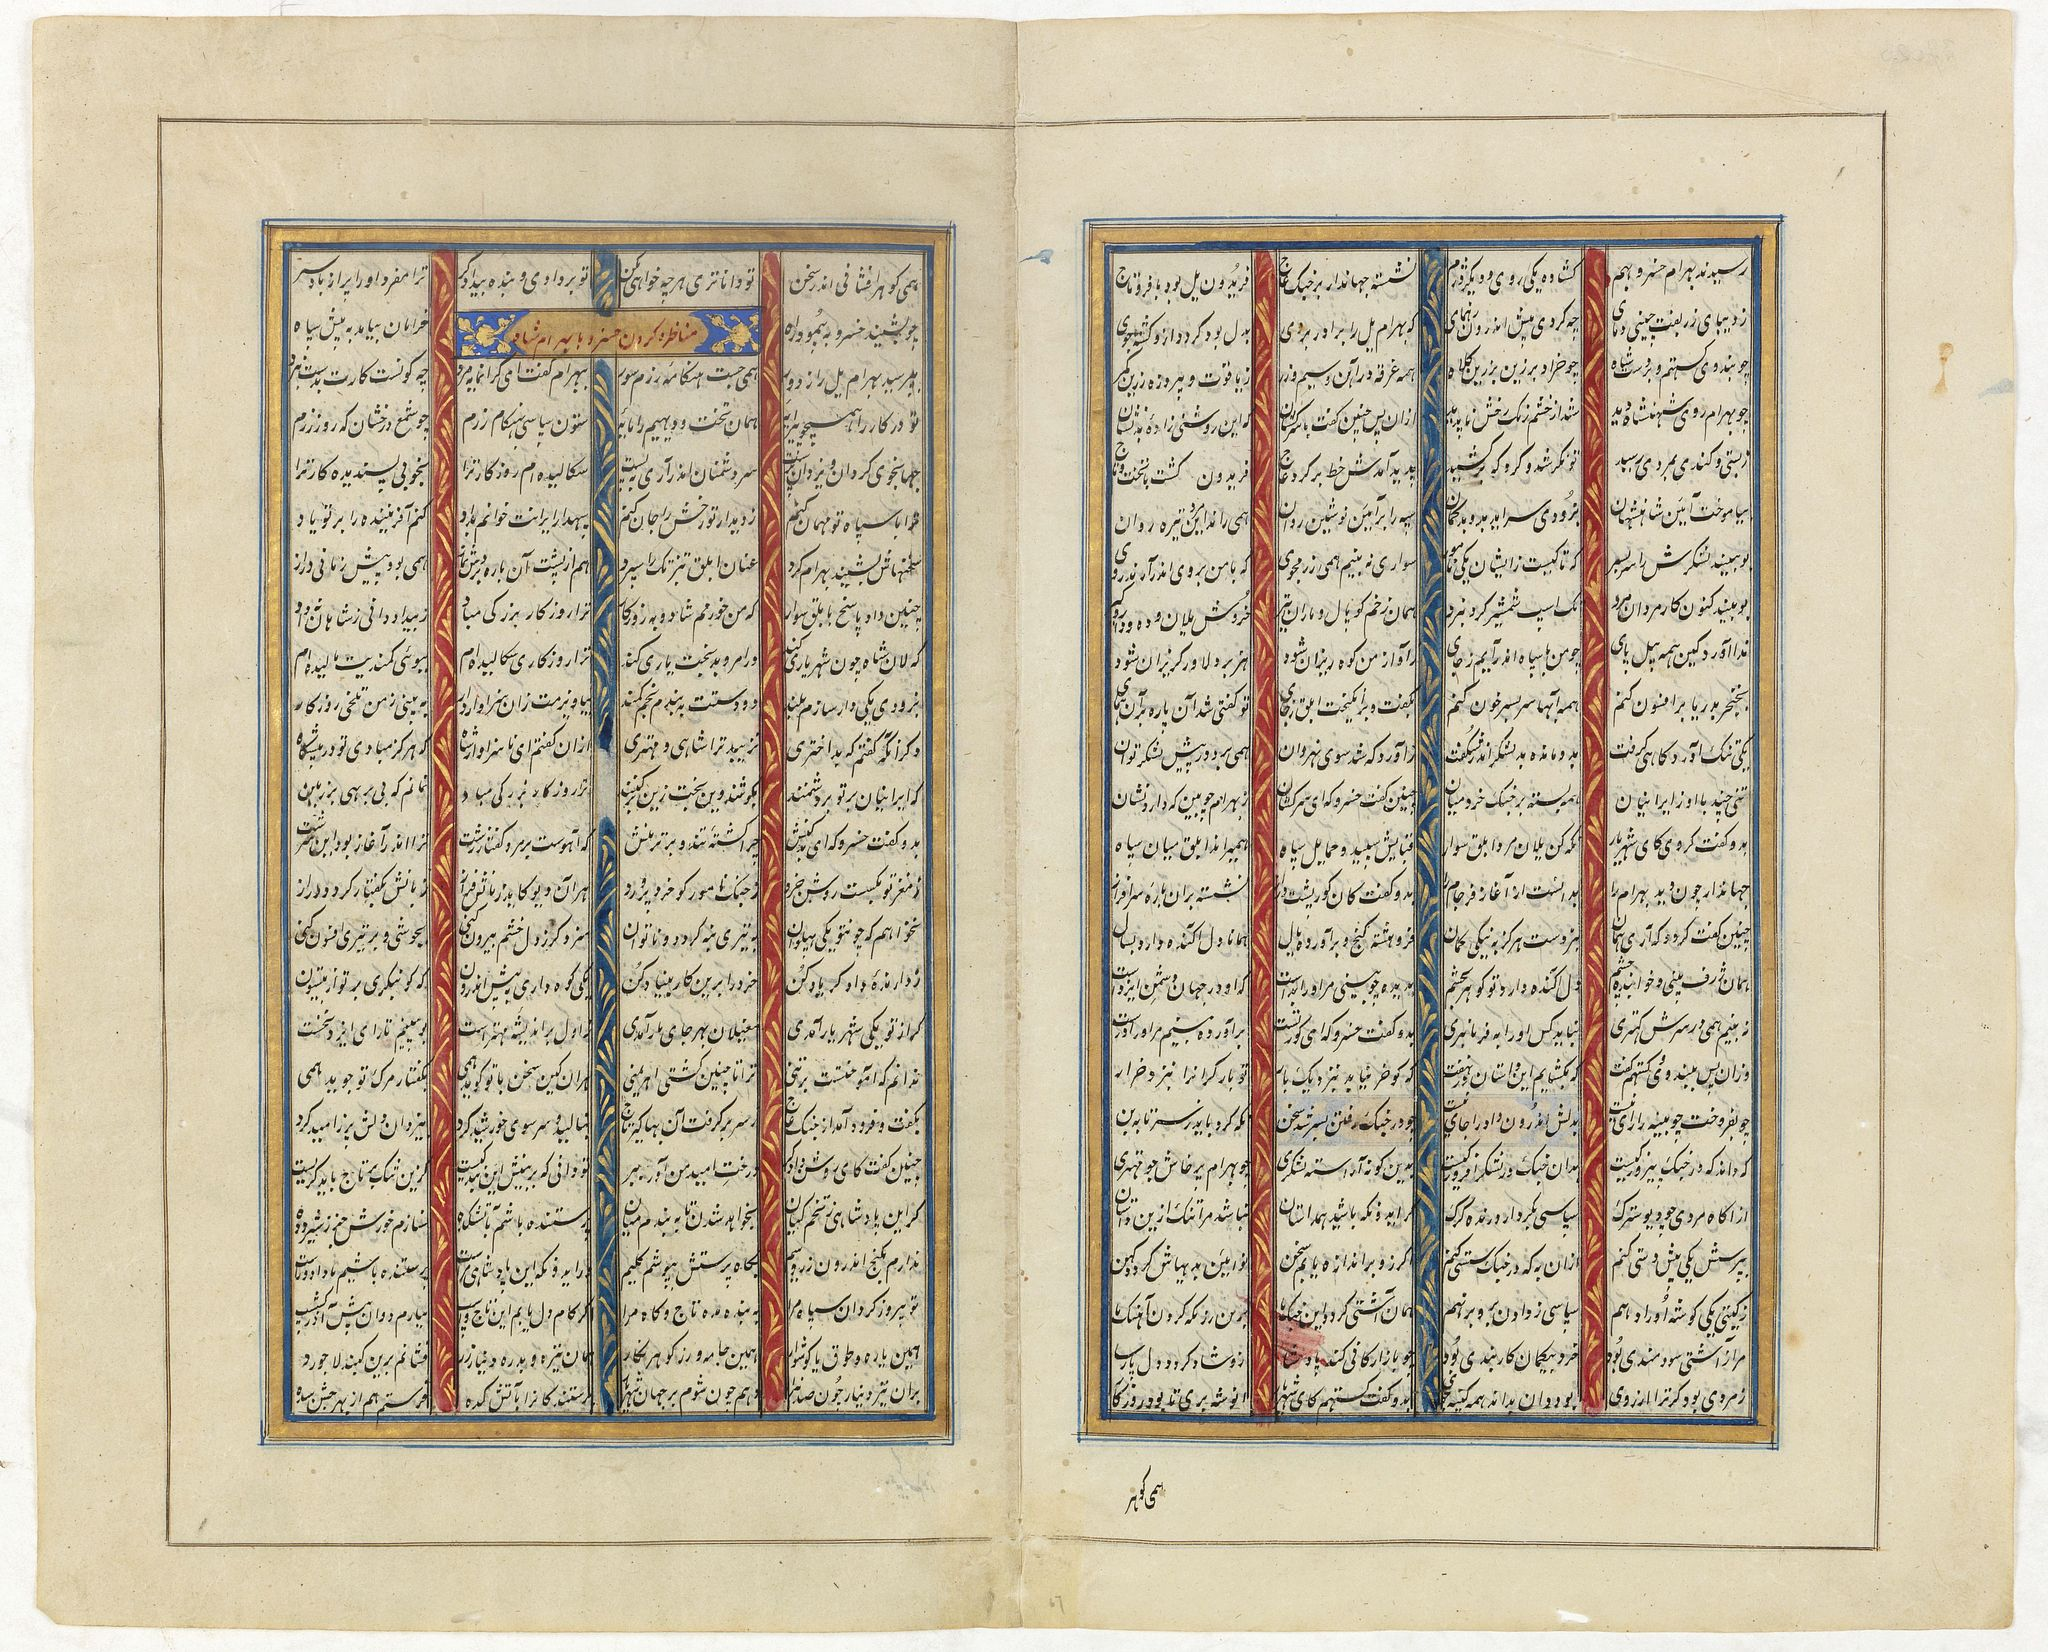 ABU BAKR JAMI -  Double page manuscript page from a Shahnameh, The Book of Kings,  written by Ferdowsi.